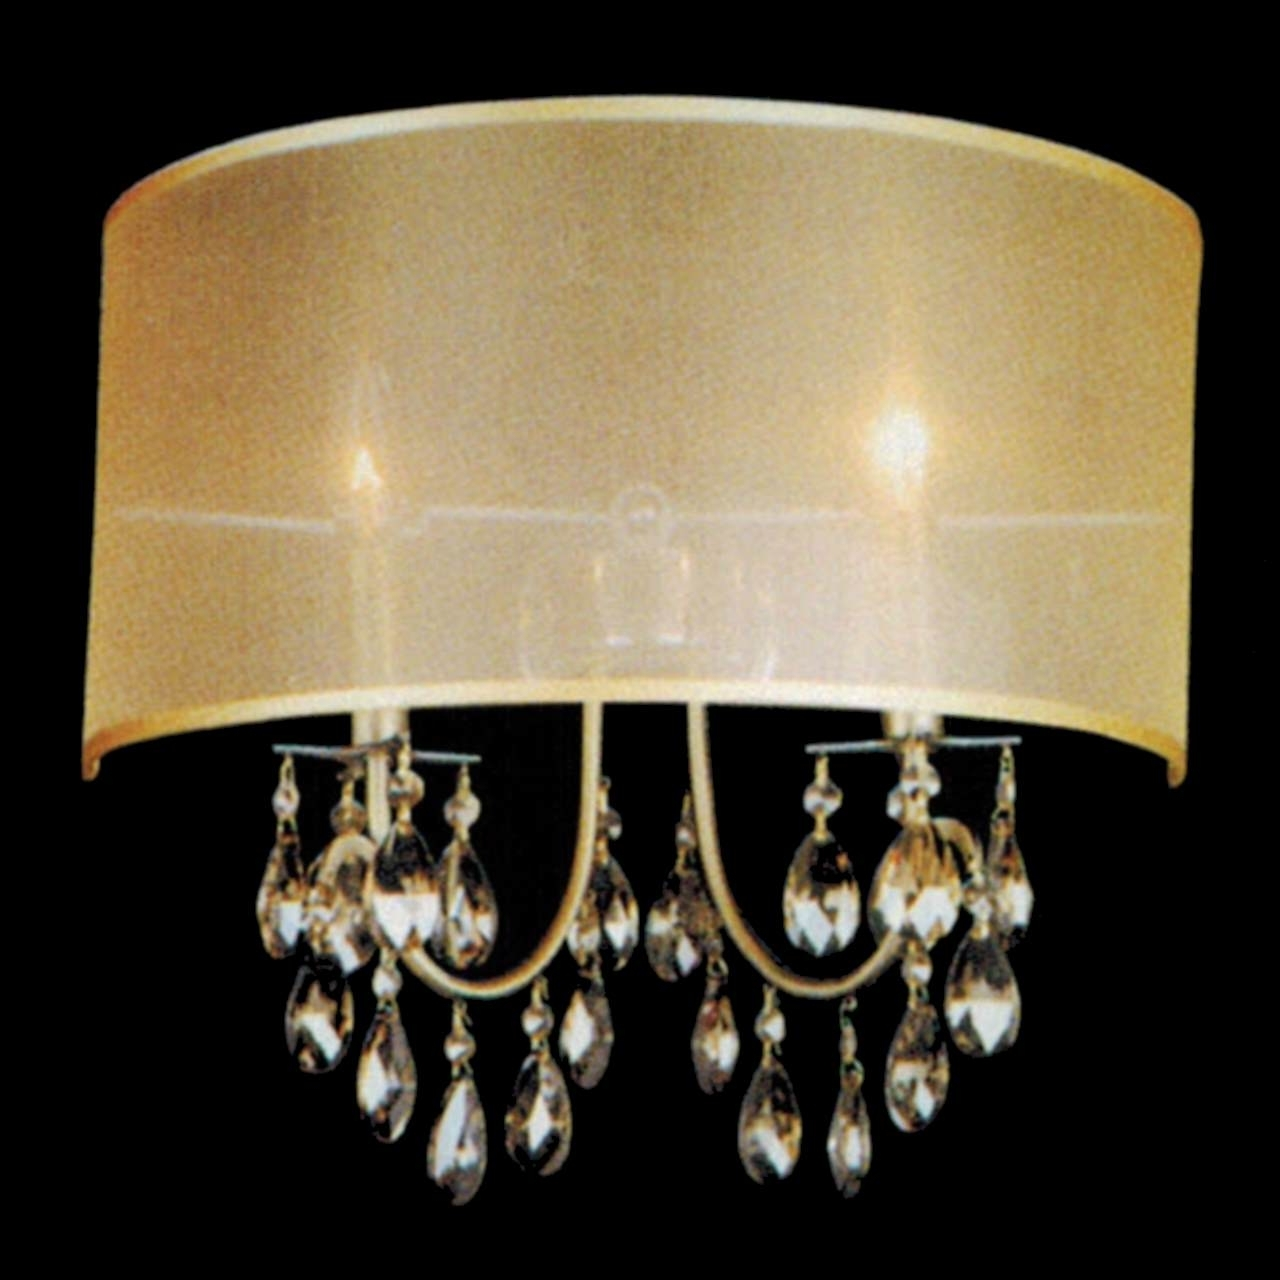 Wall Mounted Mini Chandeliers Inside Most Recently Released Light Fixture : Crystal Led Lighting Mini Chandelier Amazon Real (View 11 of 15)